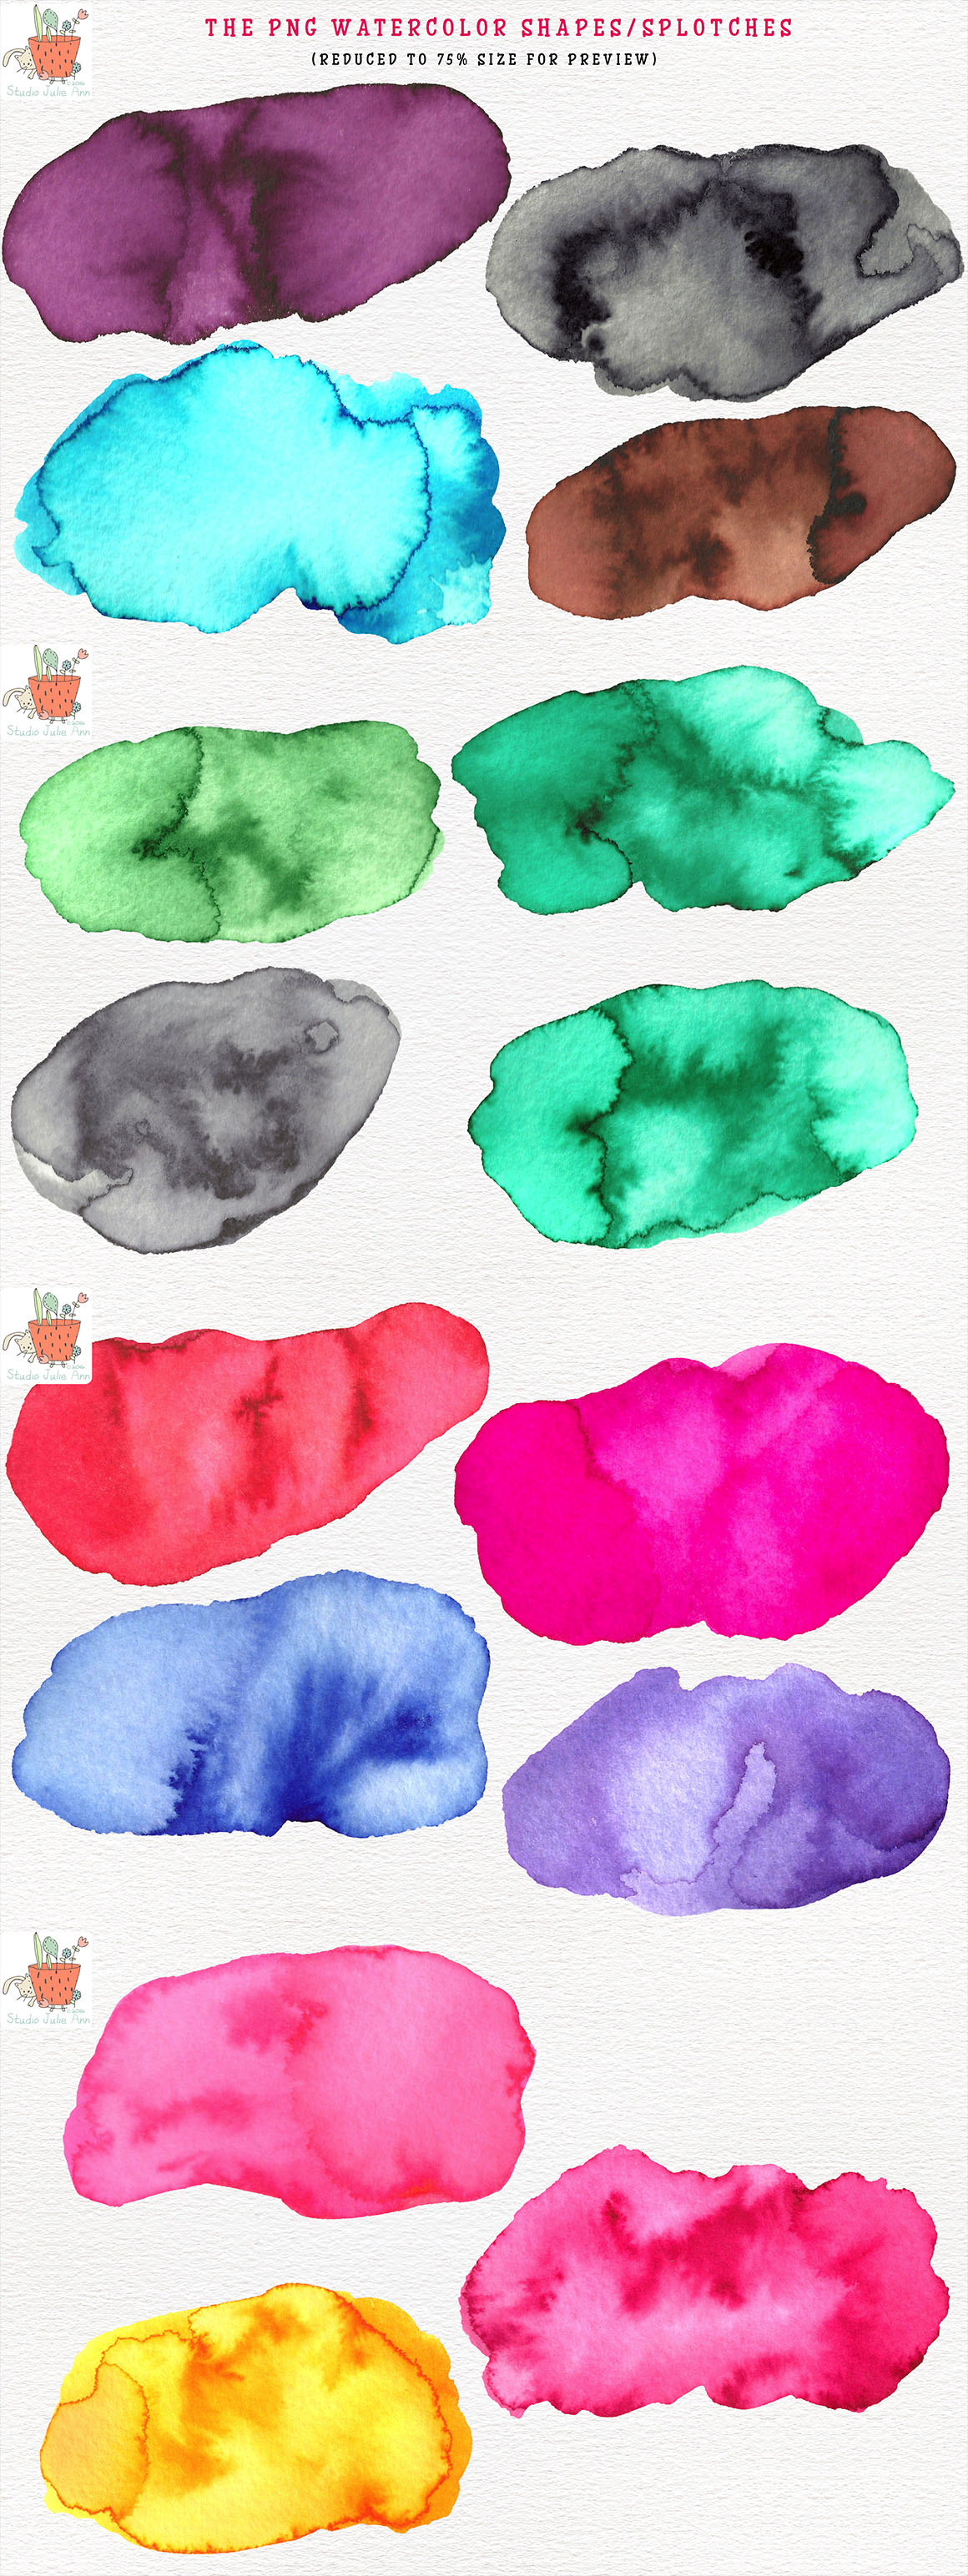 Watercolor Splotches Shapes Brushes Vol 3 example image 2